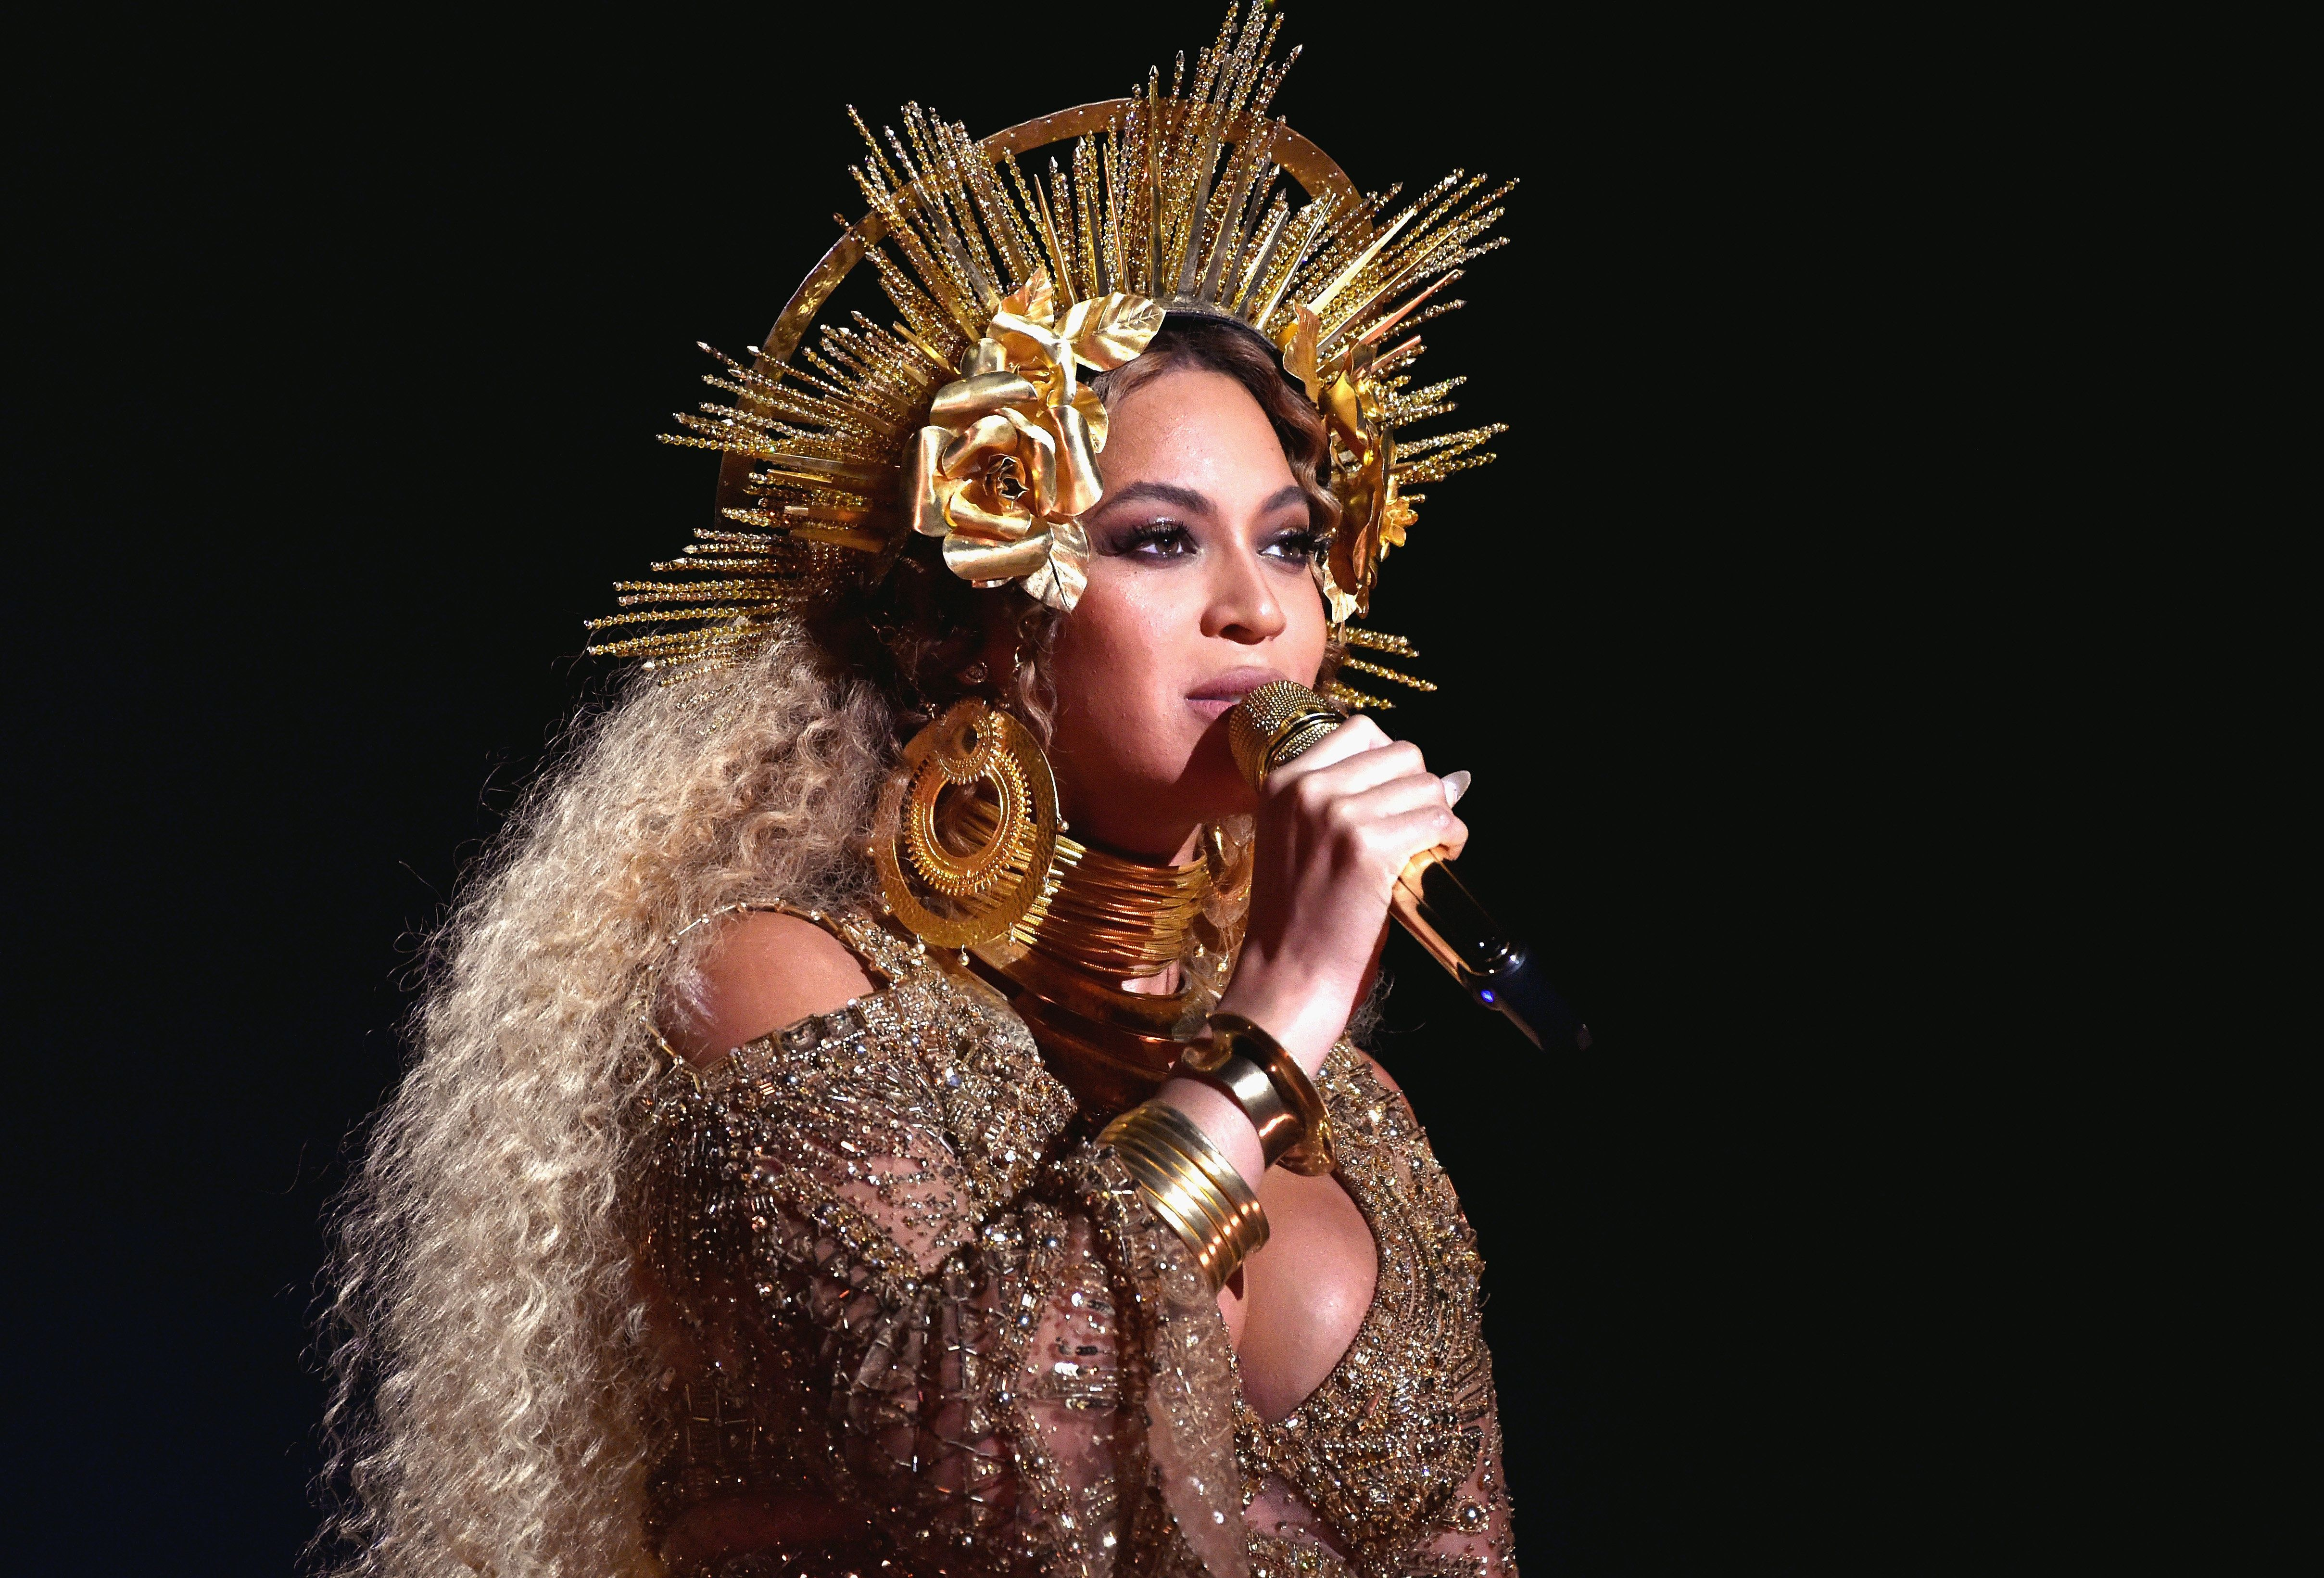 Beyoncé's Isolated Grammys Vocals Are Every Bit As Amazing As You'd Expect